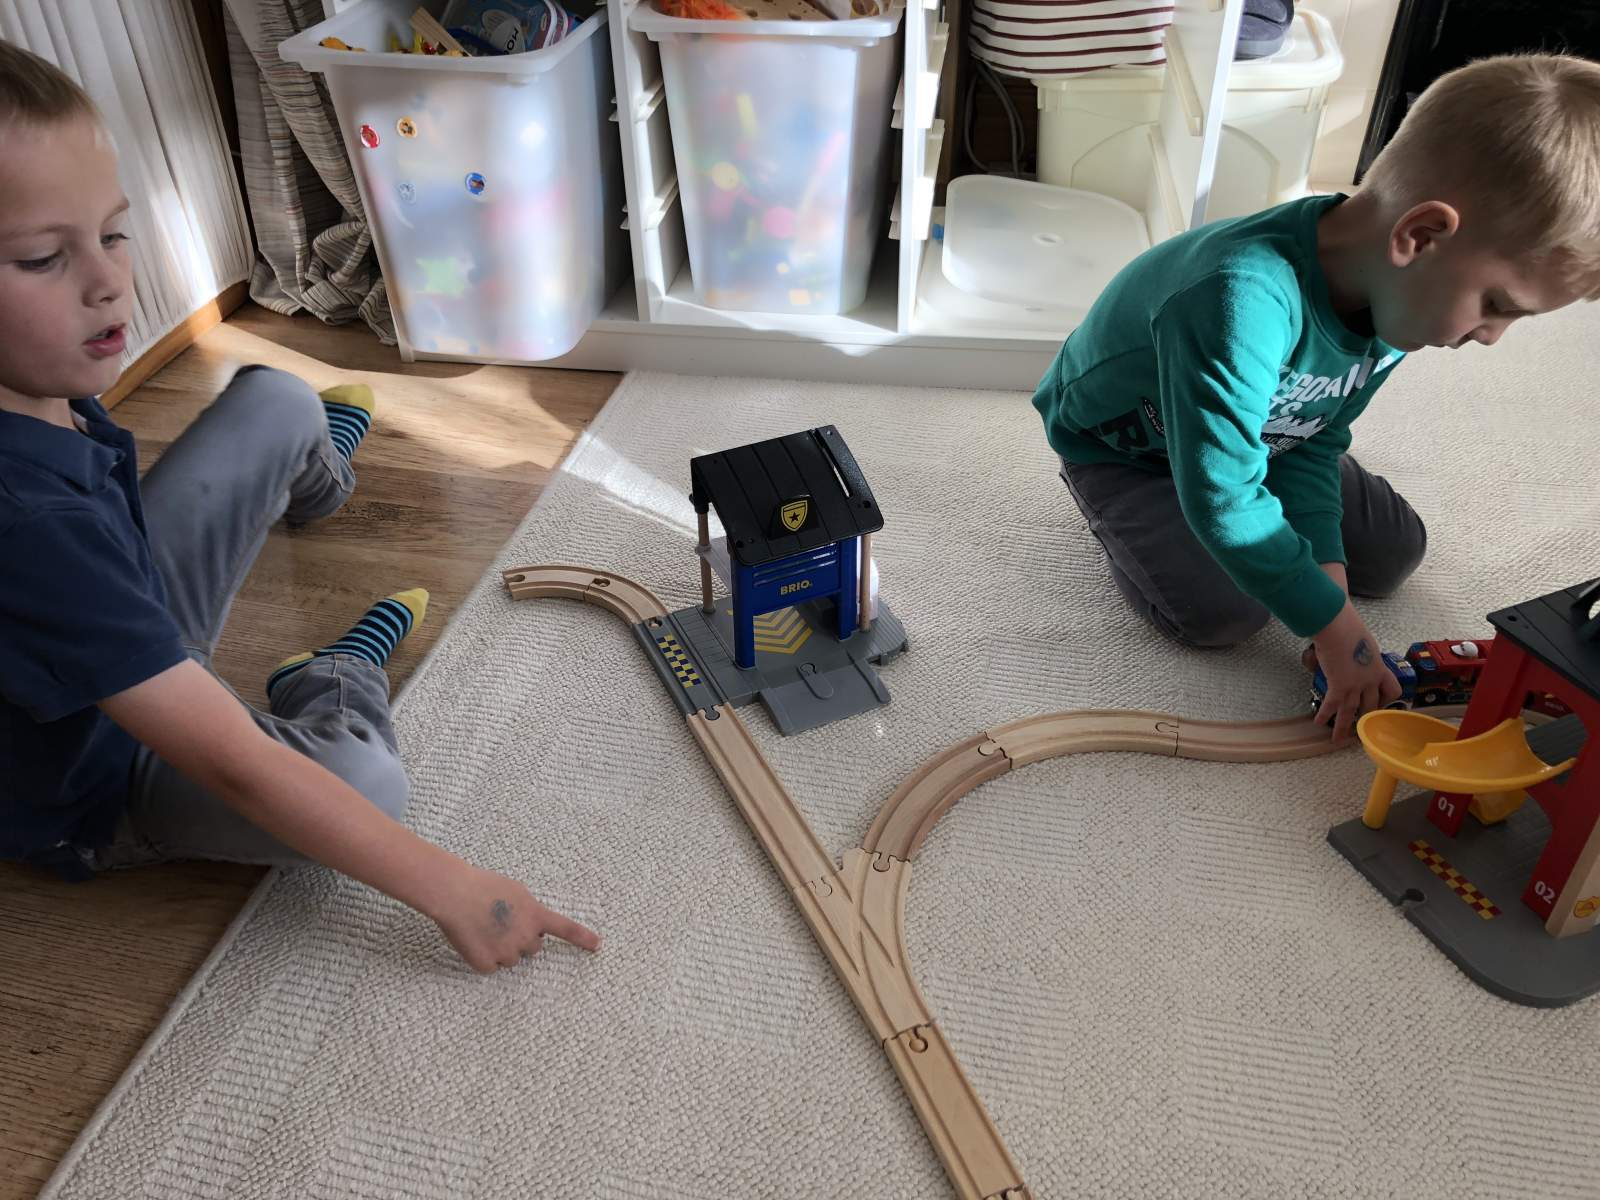 two boys playing with Brio track and police station